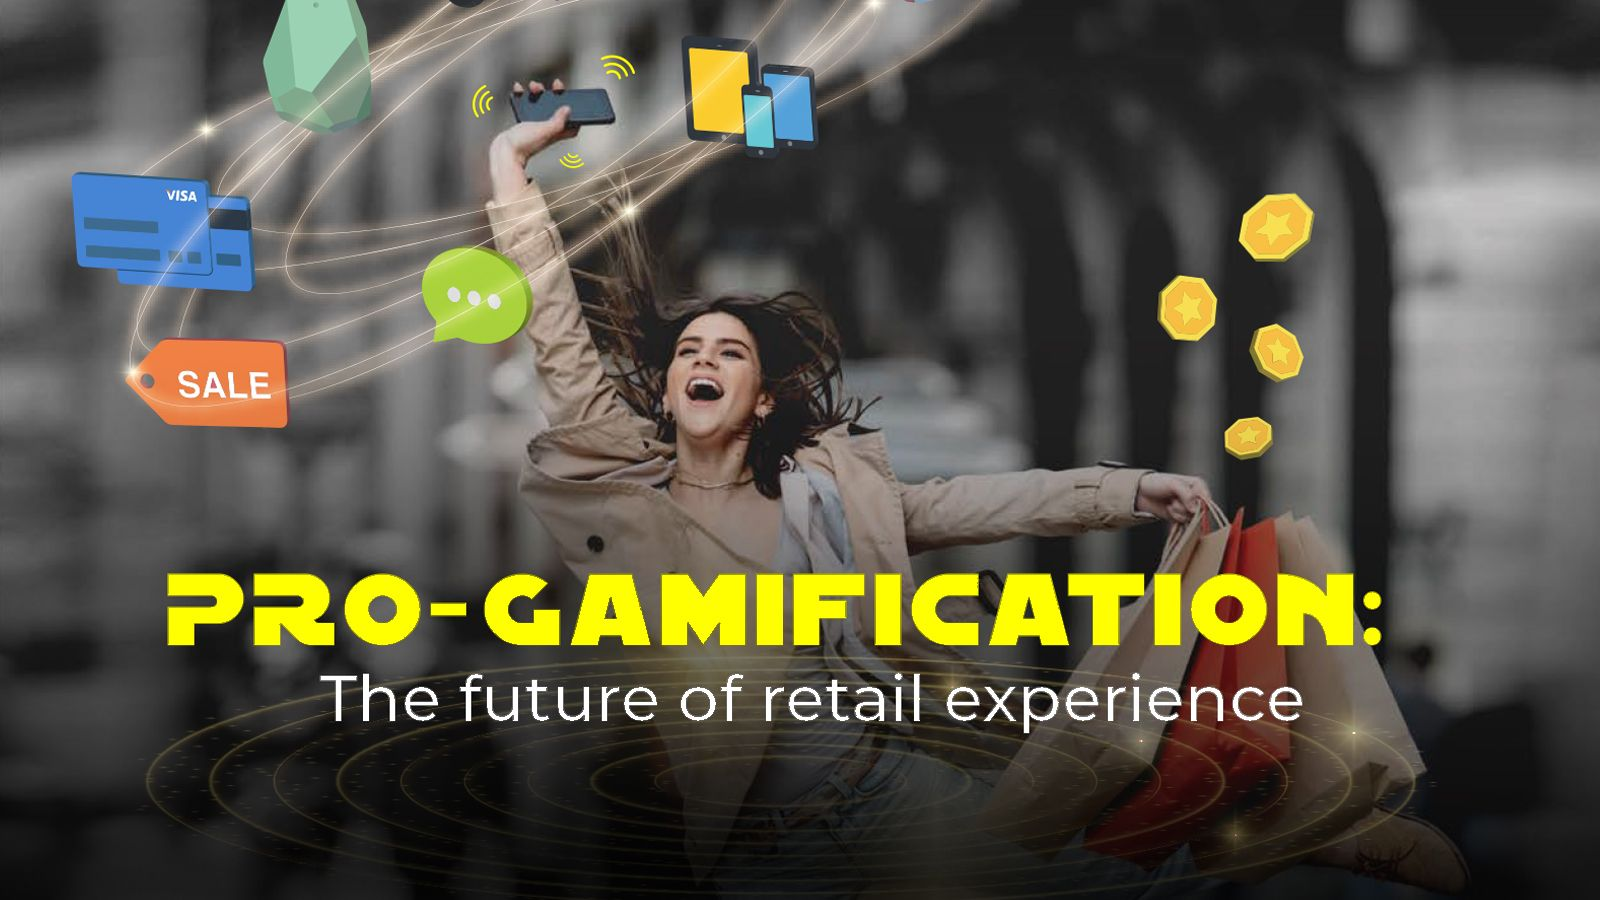 Pro-Gamification: The Future of Retail Experience